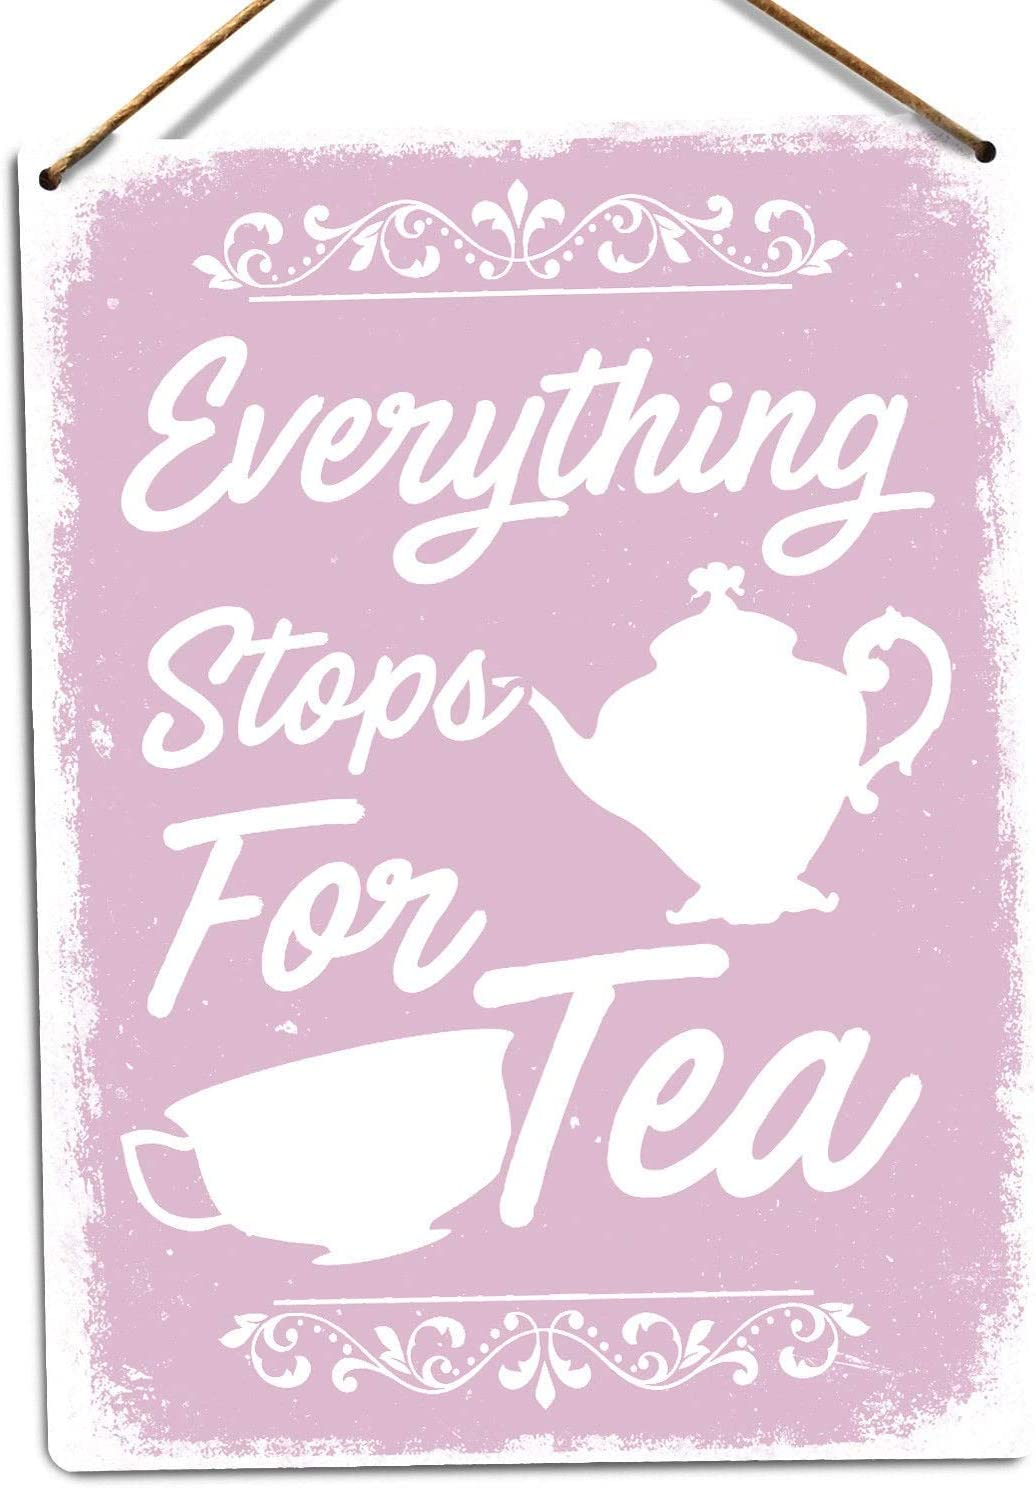 Fhdang Decor Aluminium Signs Everything Stops for Tea,Pink Metal Sign Street Signs 12x18 Inches